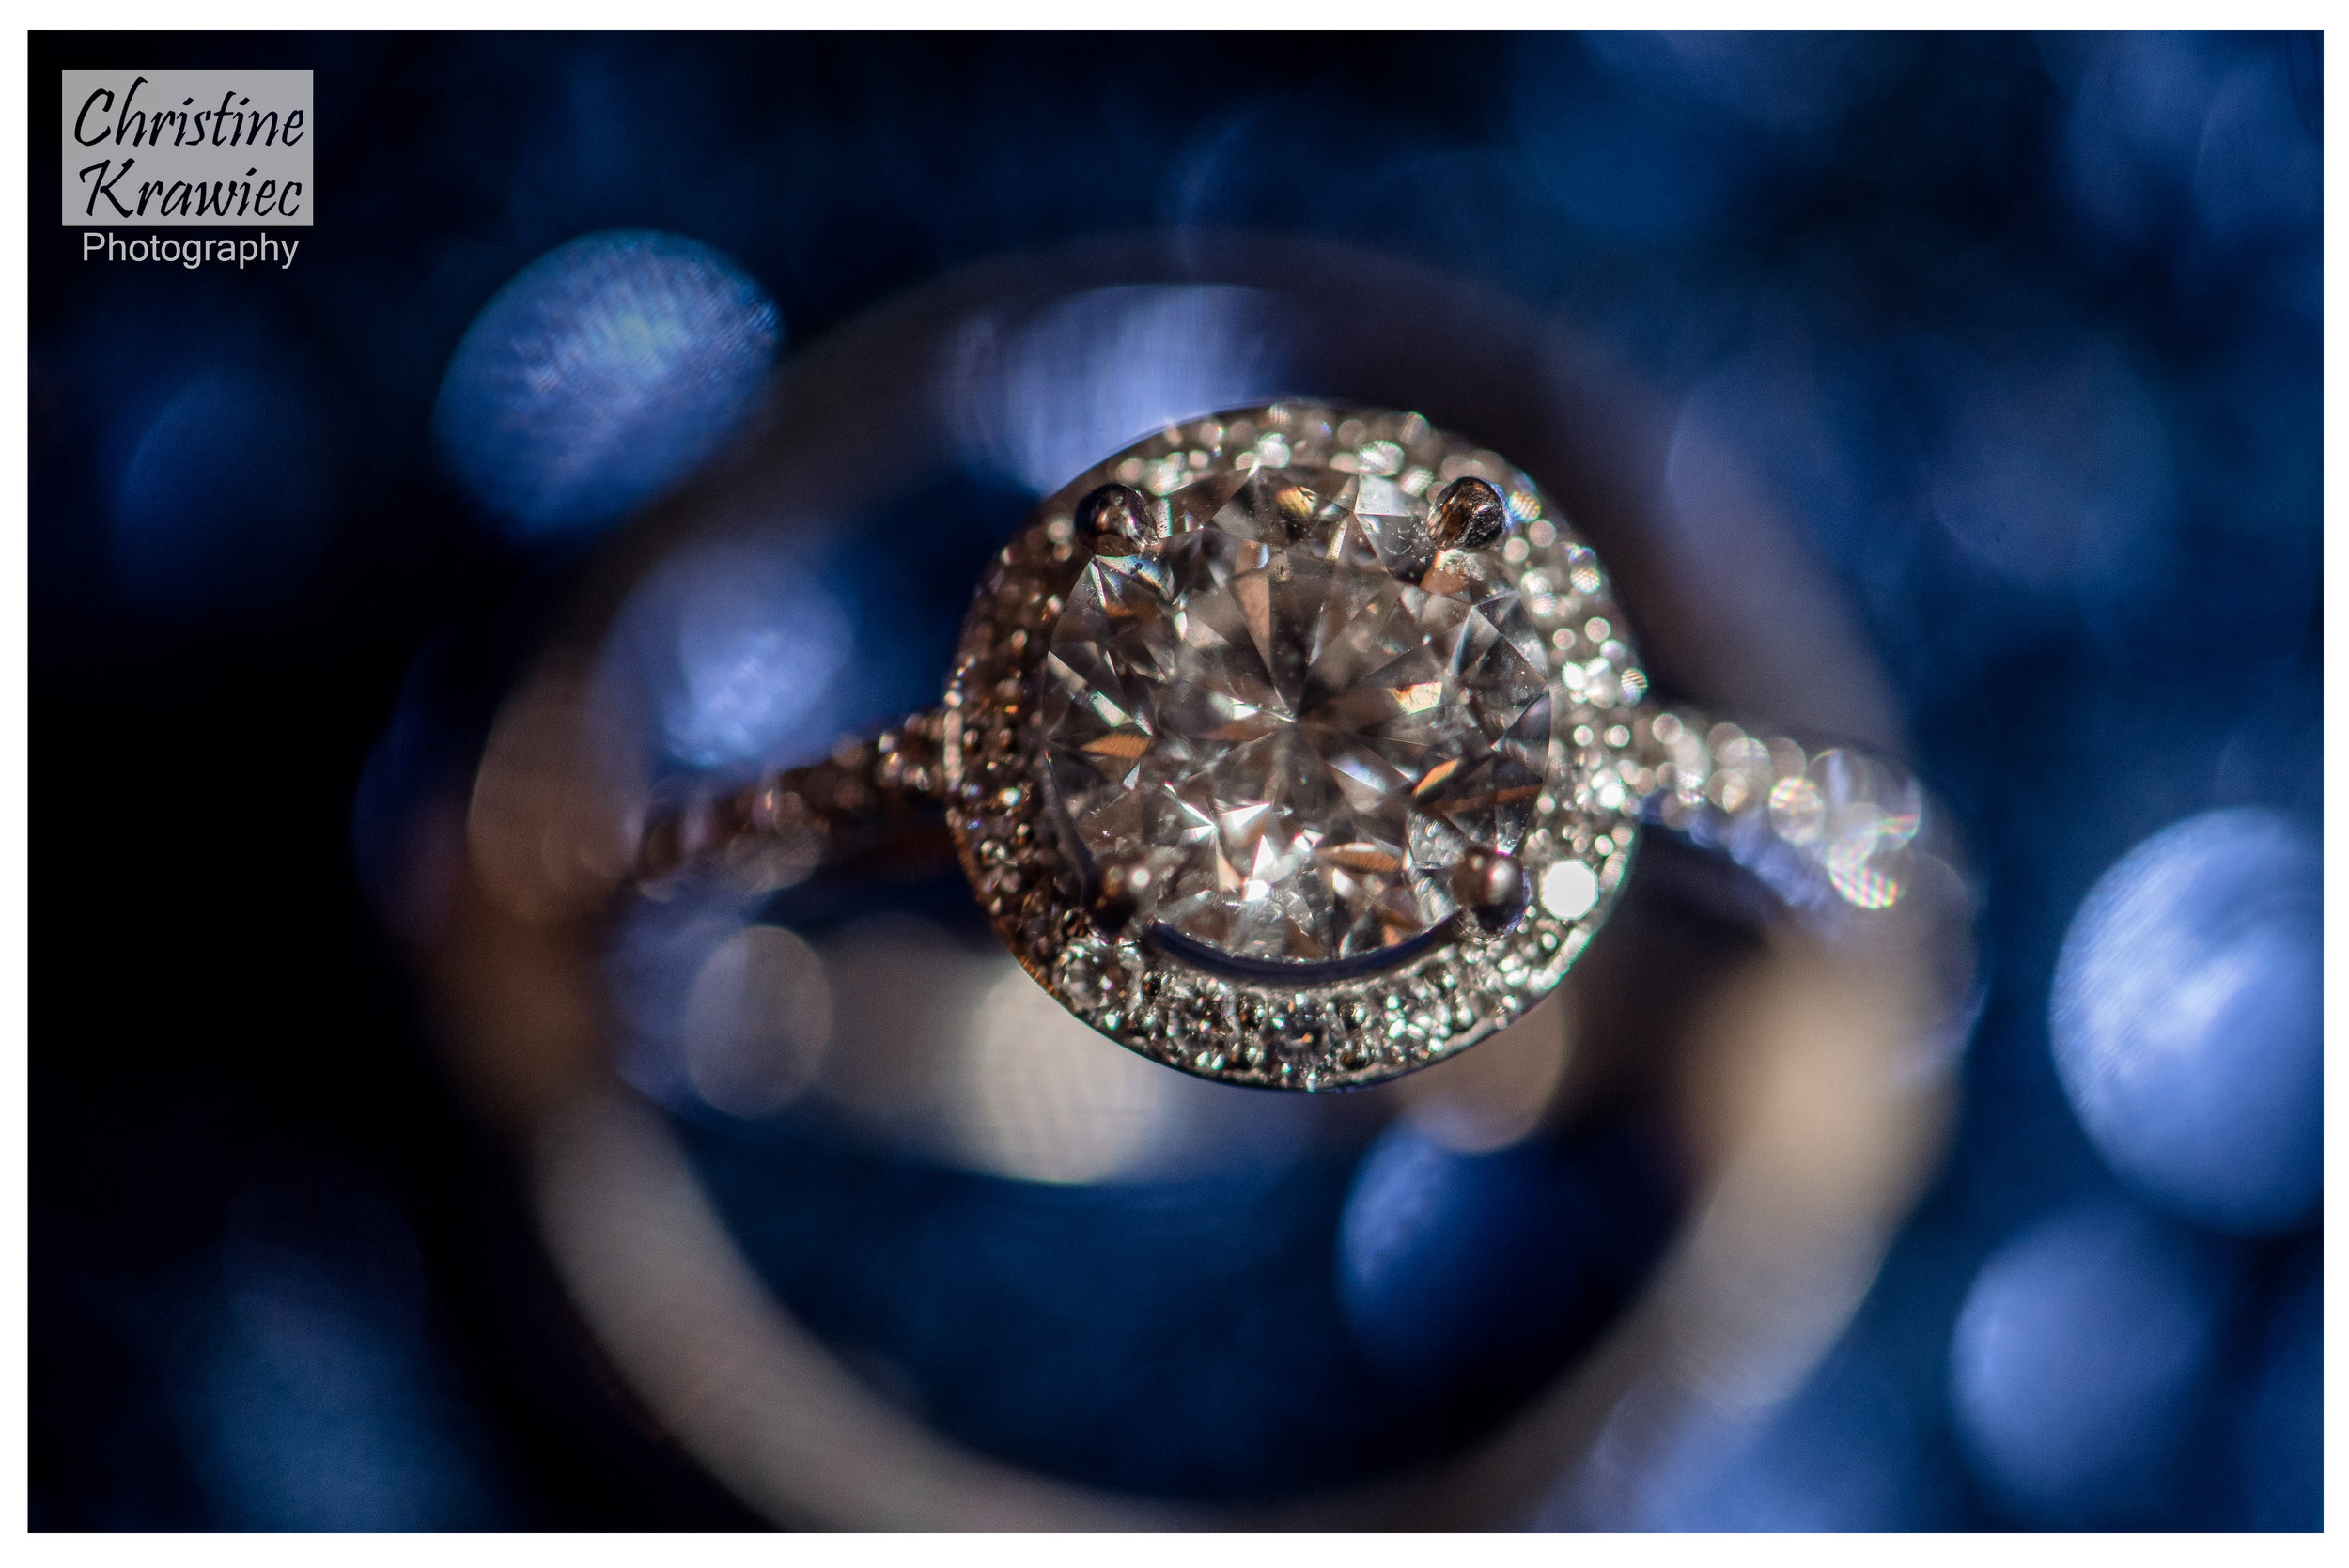 The card table display was a perfect setting to add a pop of color for this ring shot!